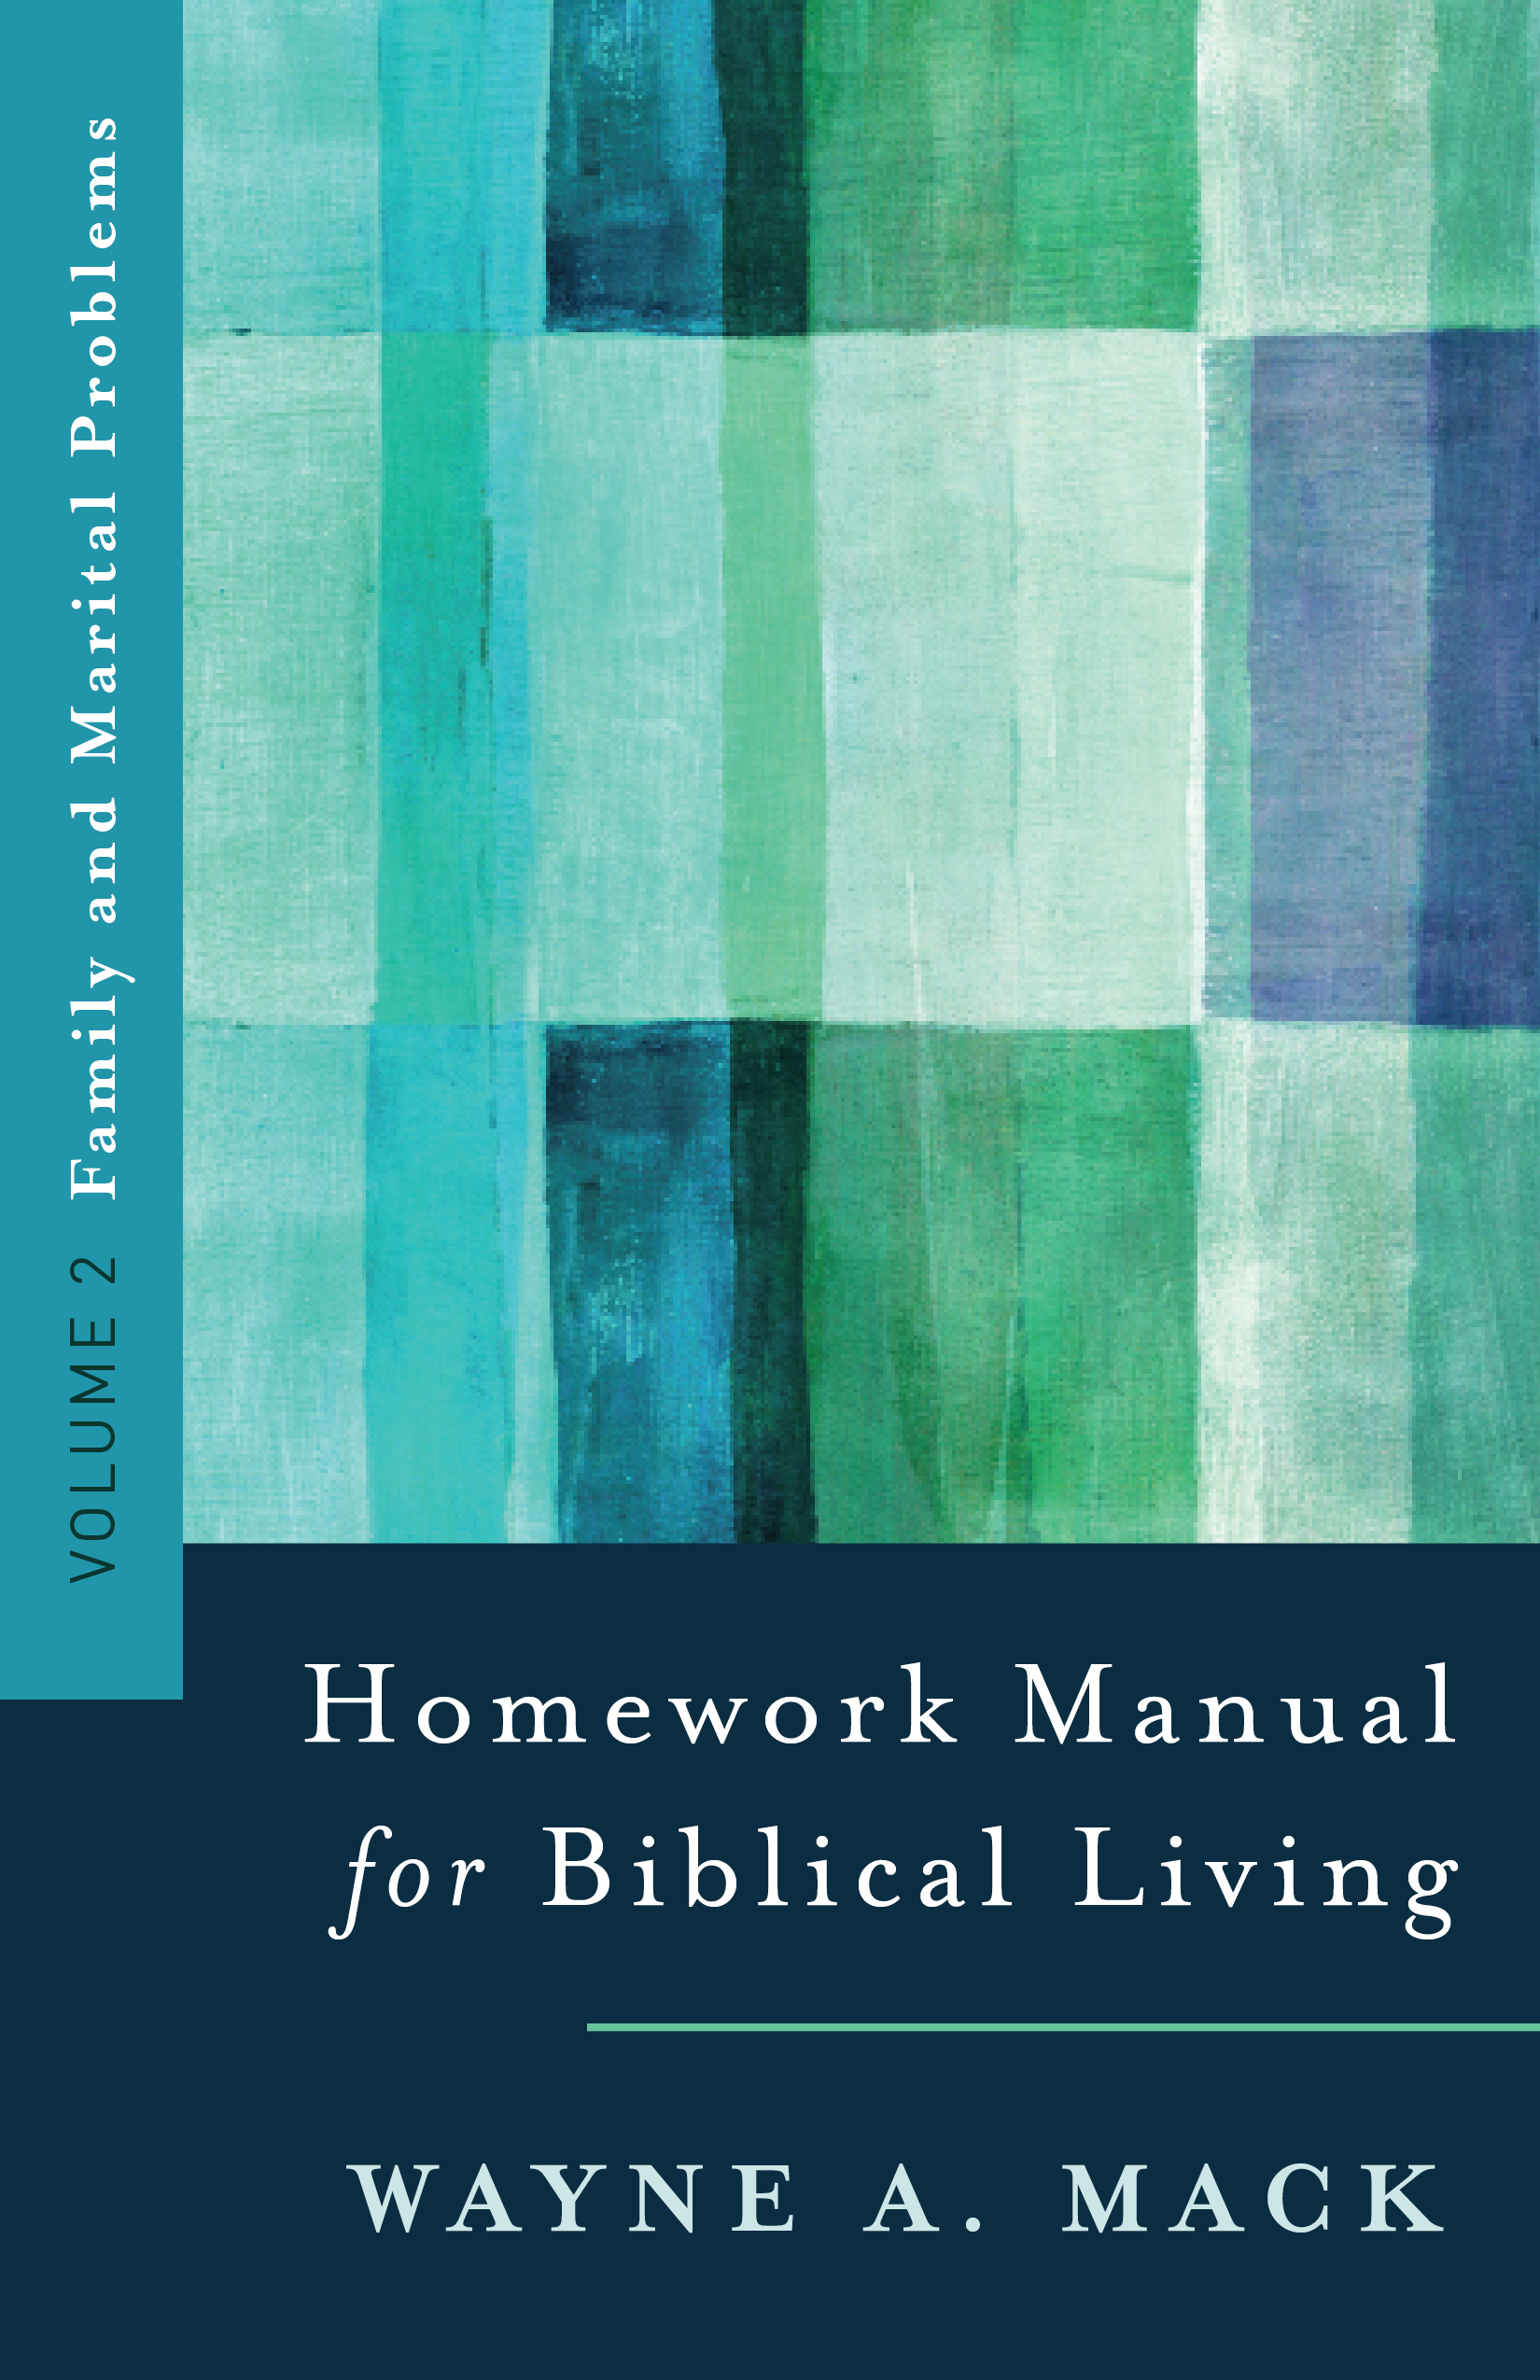 Homework Manual for Biblical Living, VOL. 2 (Family & Marital)